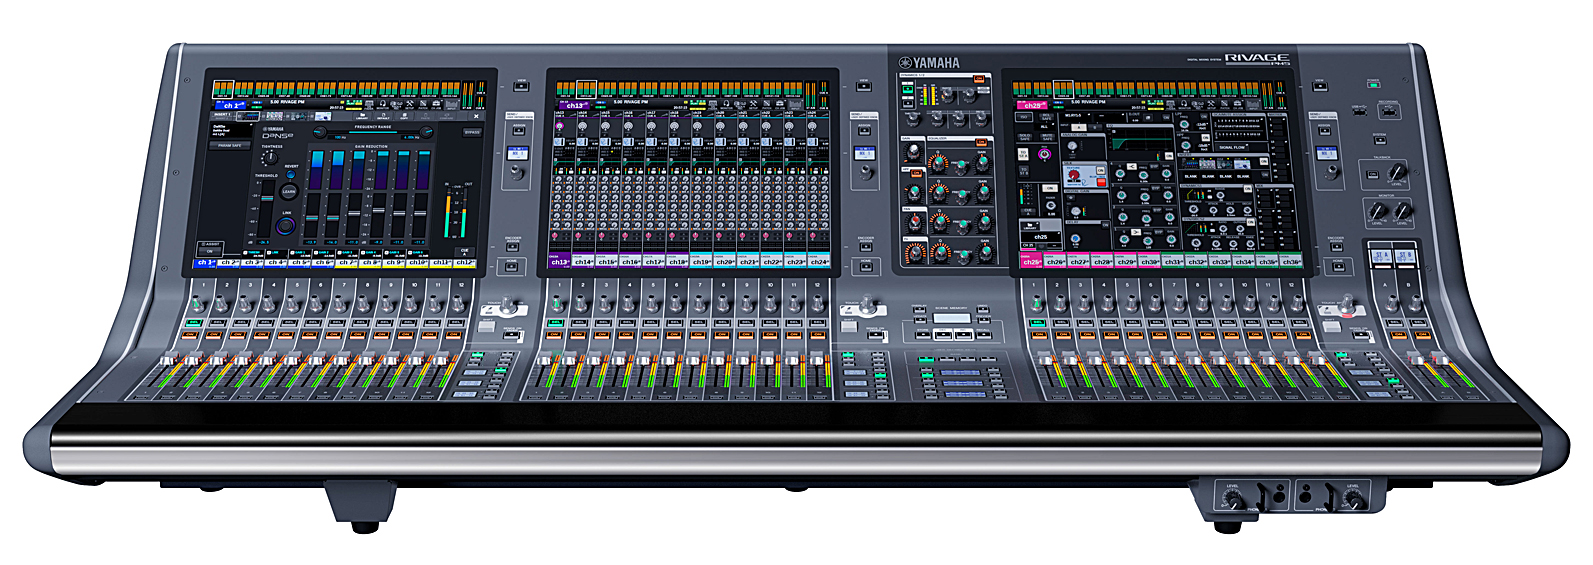 "The 93-pound CS-R5 control surface sports three 15"" capacitive touch screens and a more compact Selected Channel section"